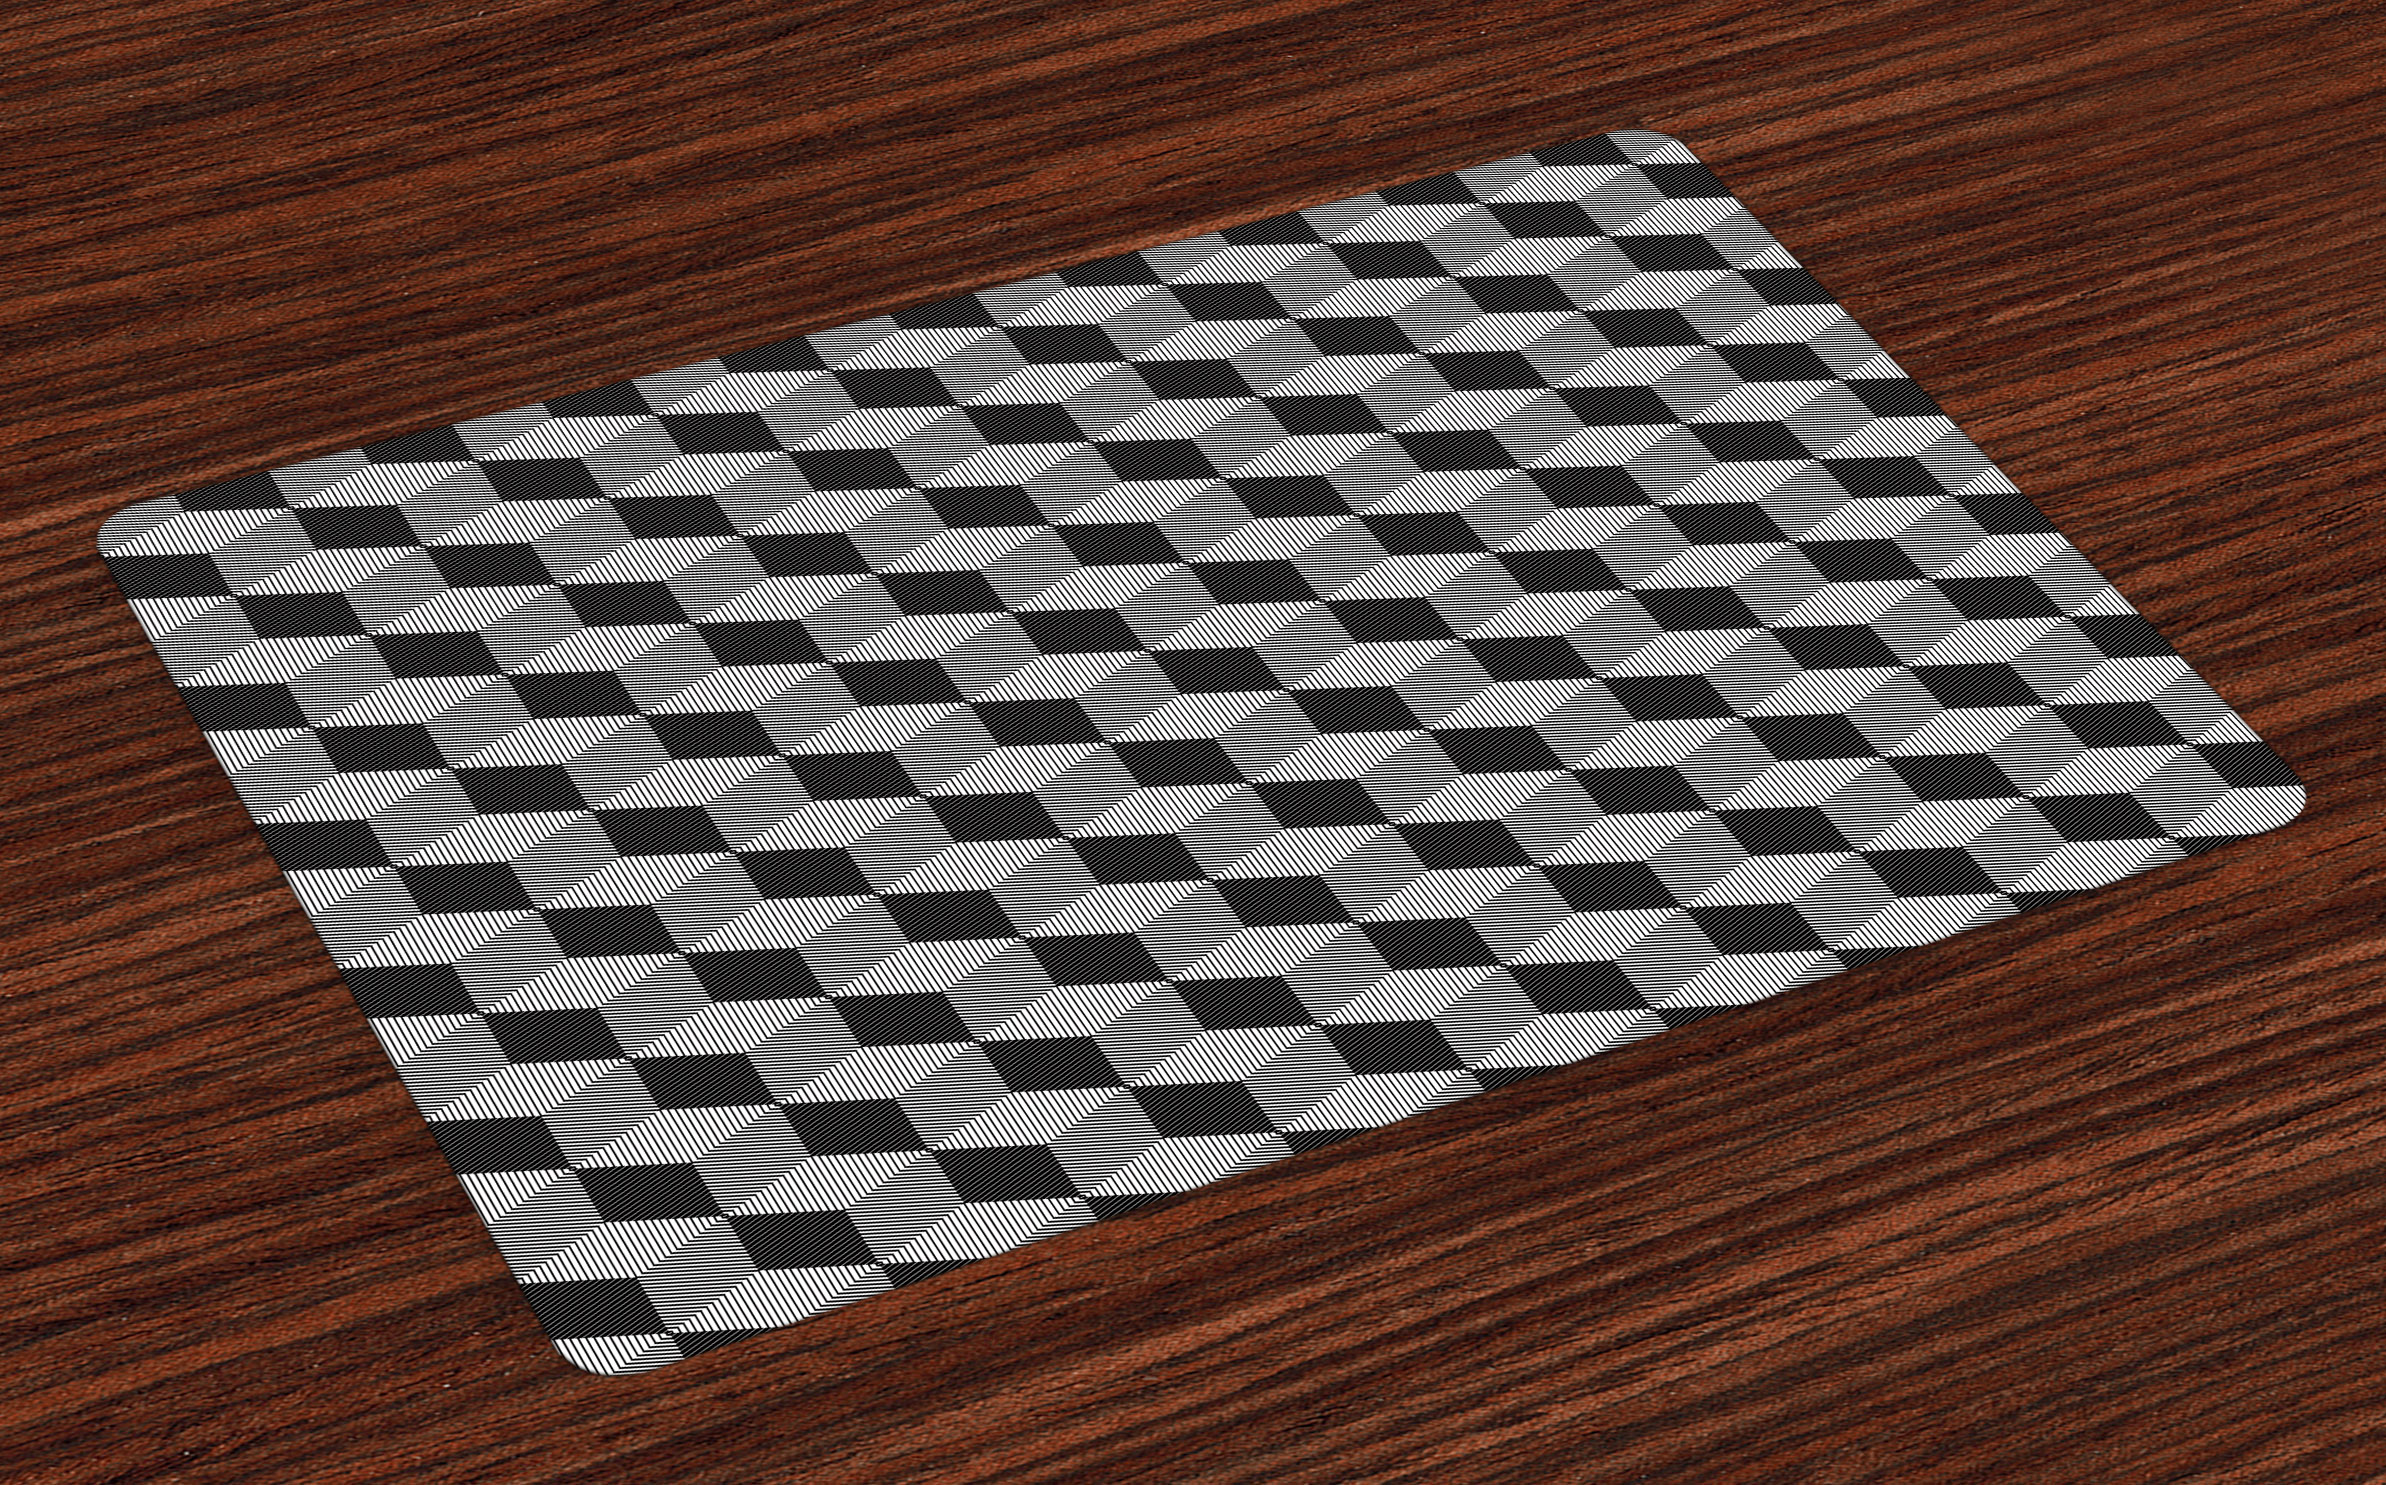 black and white placemats set of 4 monochrome cube composition with abstract 3d design optical. Black Bedroom Furniture Sets. Home Design Ideas